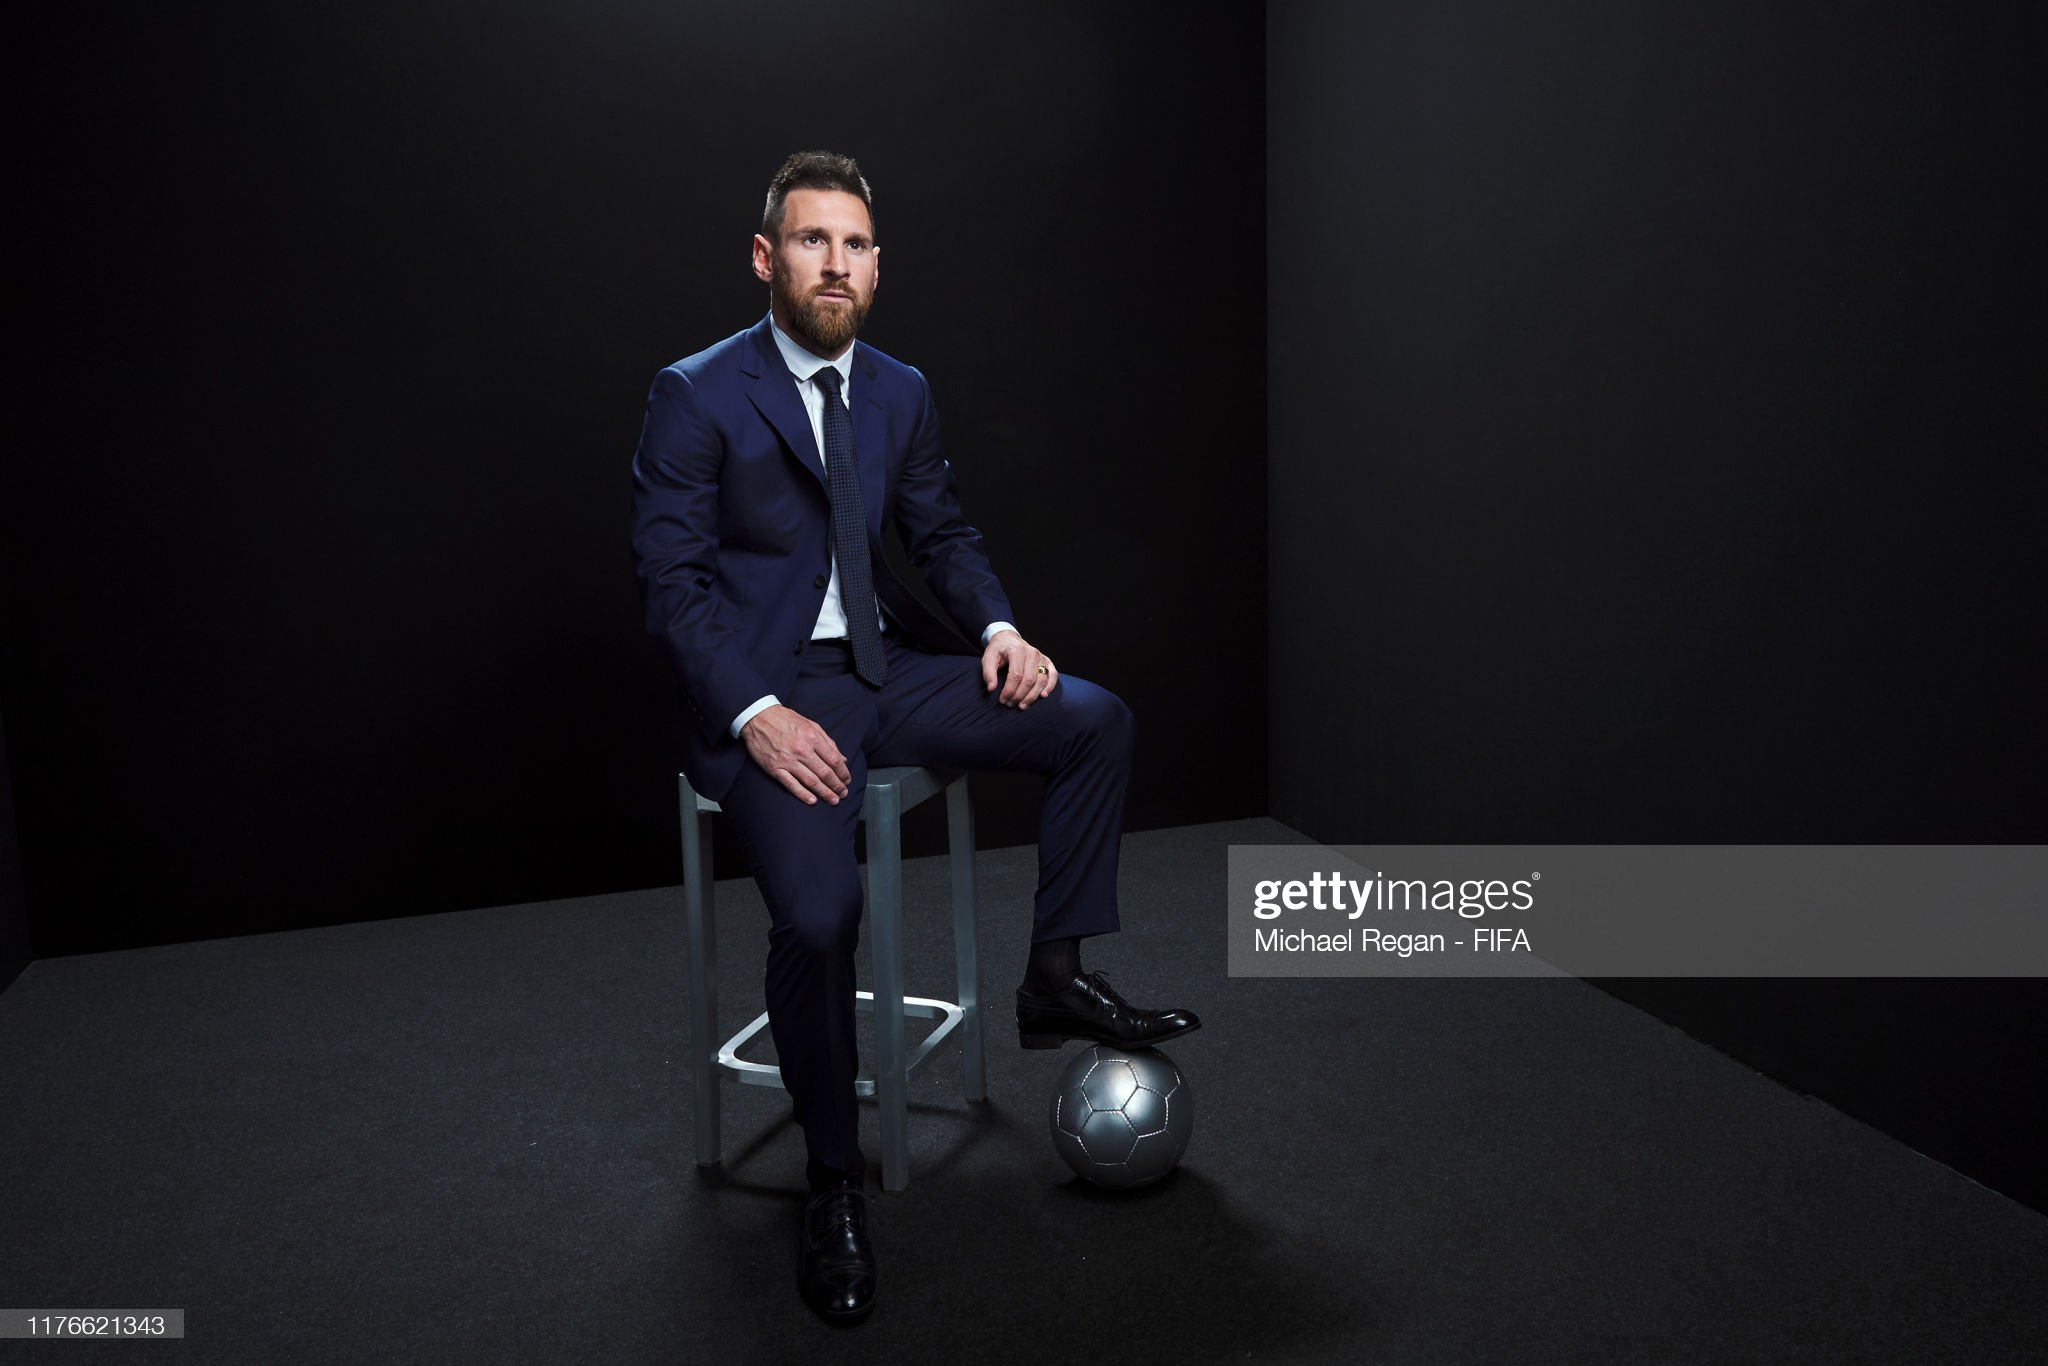 The Best FIFA Football Awards 2019 The-best-fifa-mens-player-award-finalist-lionel-messi-of-fc-barcelona-picture-id1176621343?s=2048x2048